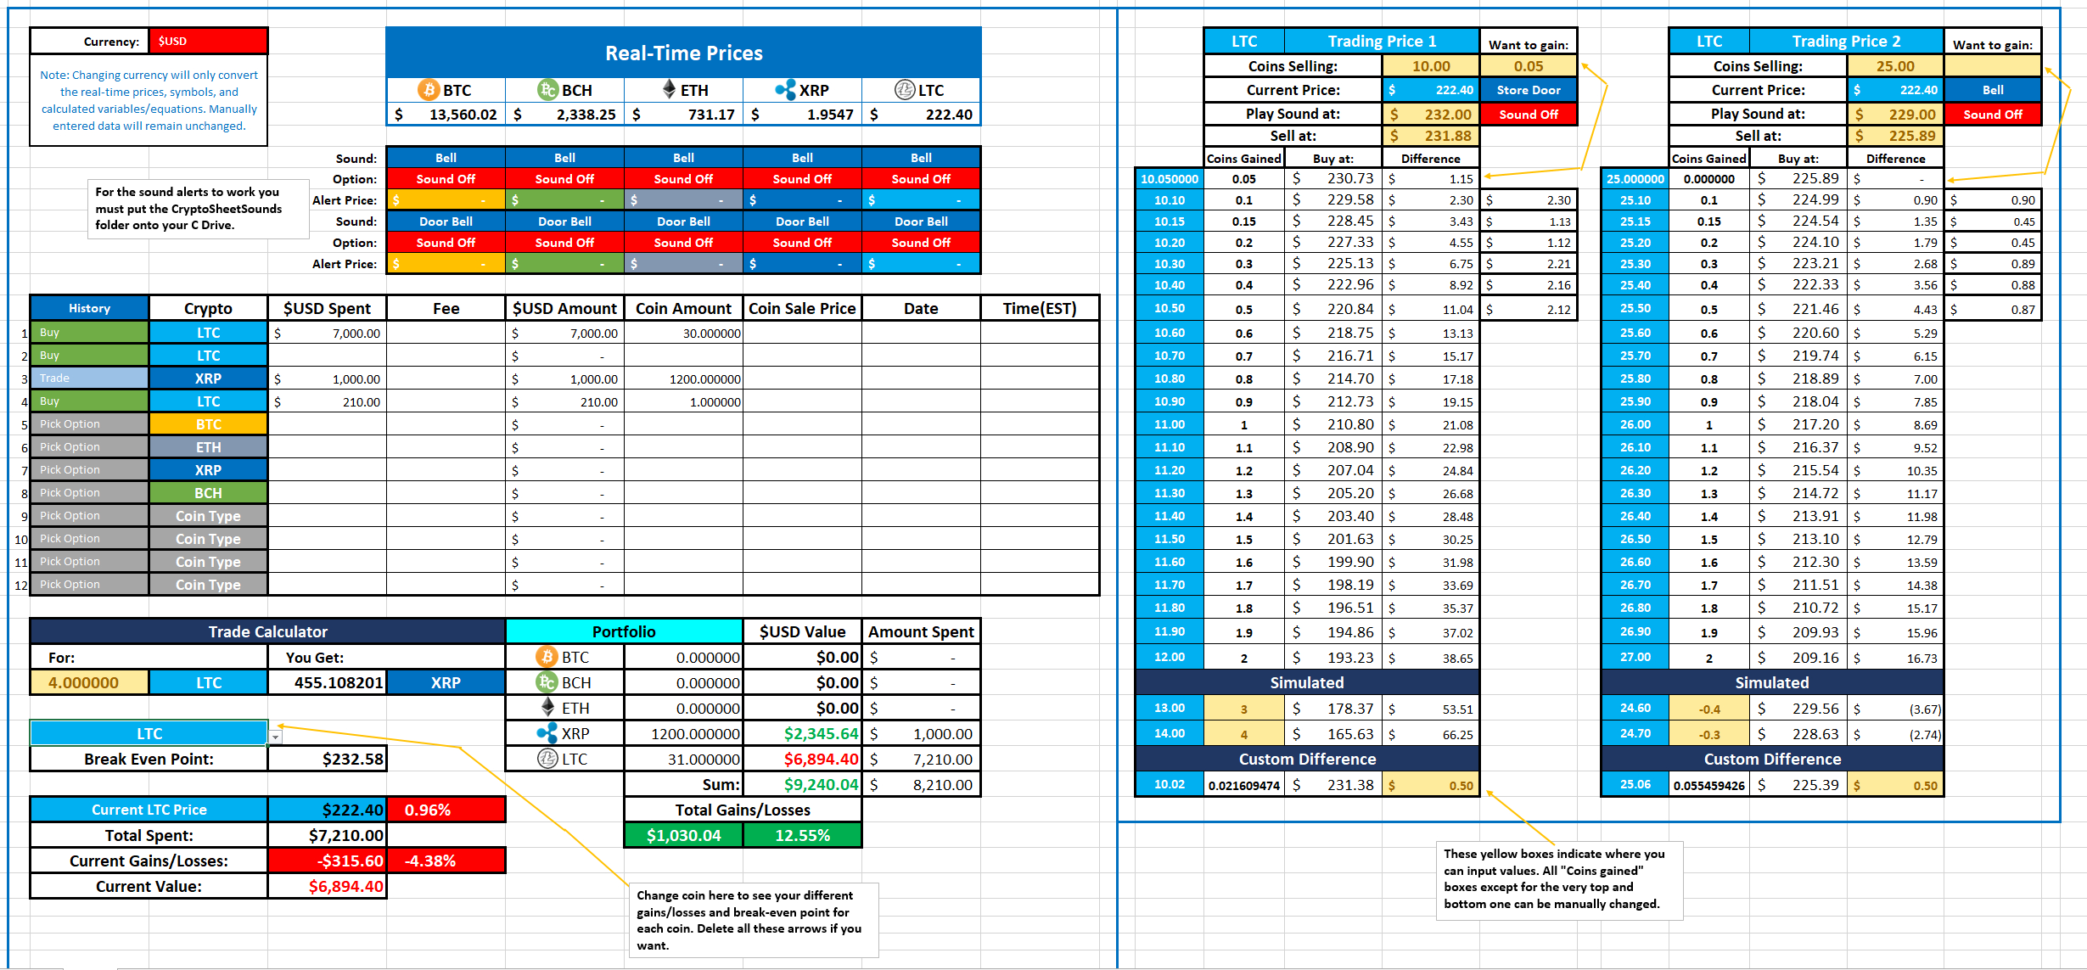 Bitcoin Excel Spreadsheet With Realtime Multicoin Excel Sheet With Sound Alerts, Trade